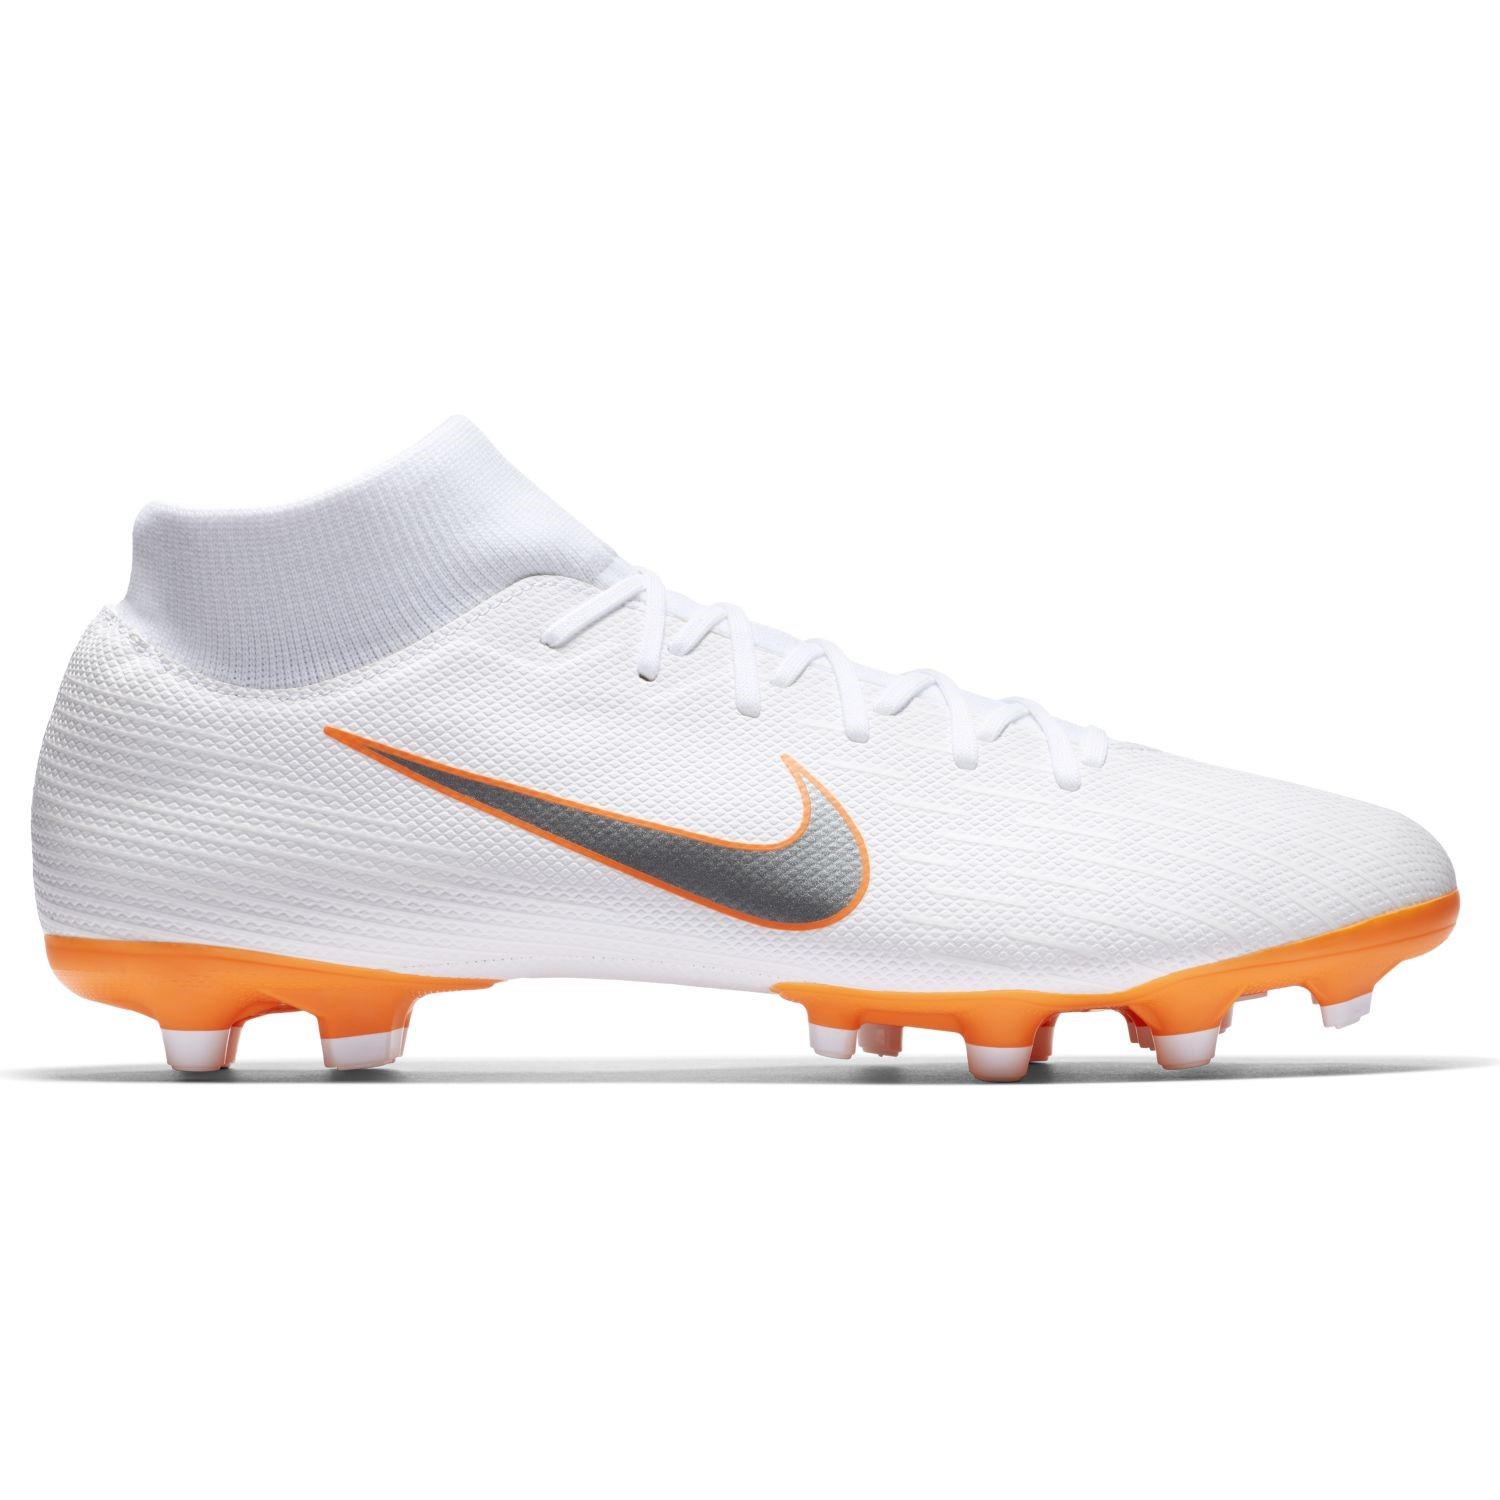 aed85d594127 Nike Mercurial Superfly VI Academy MG - Mens Football Boots -  White/Metallic Cool Grey